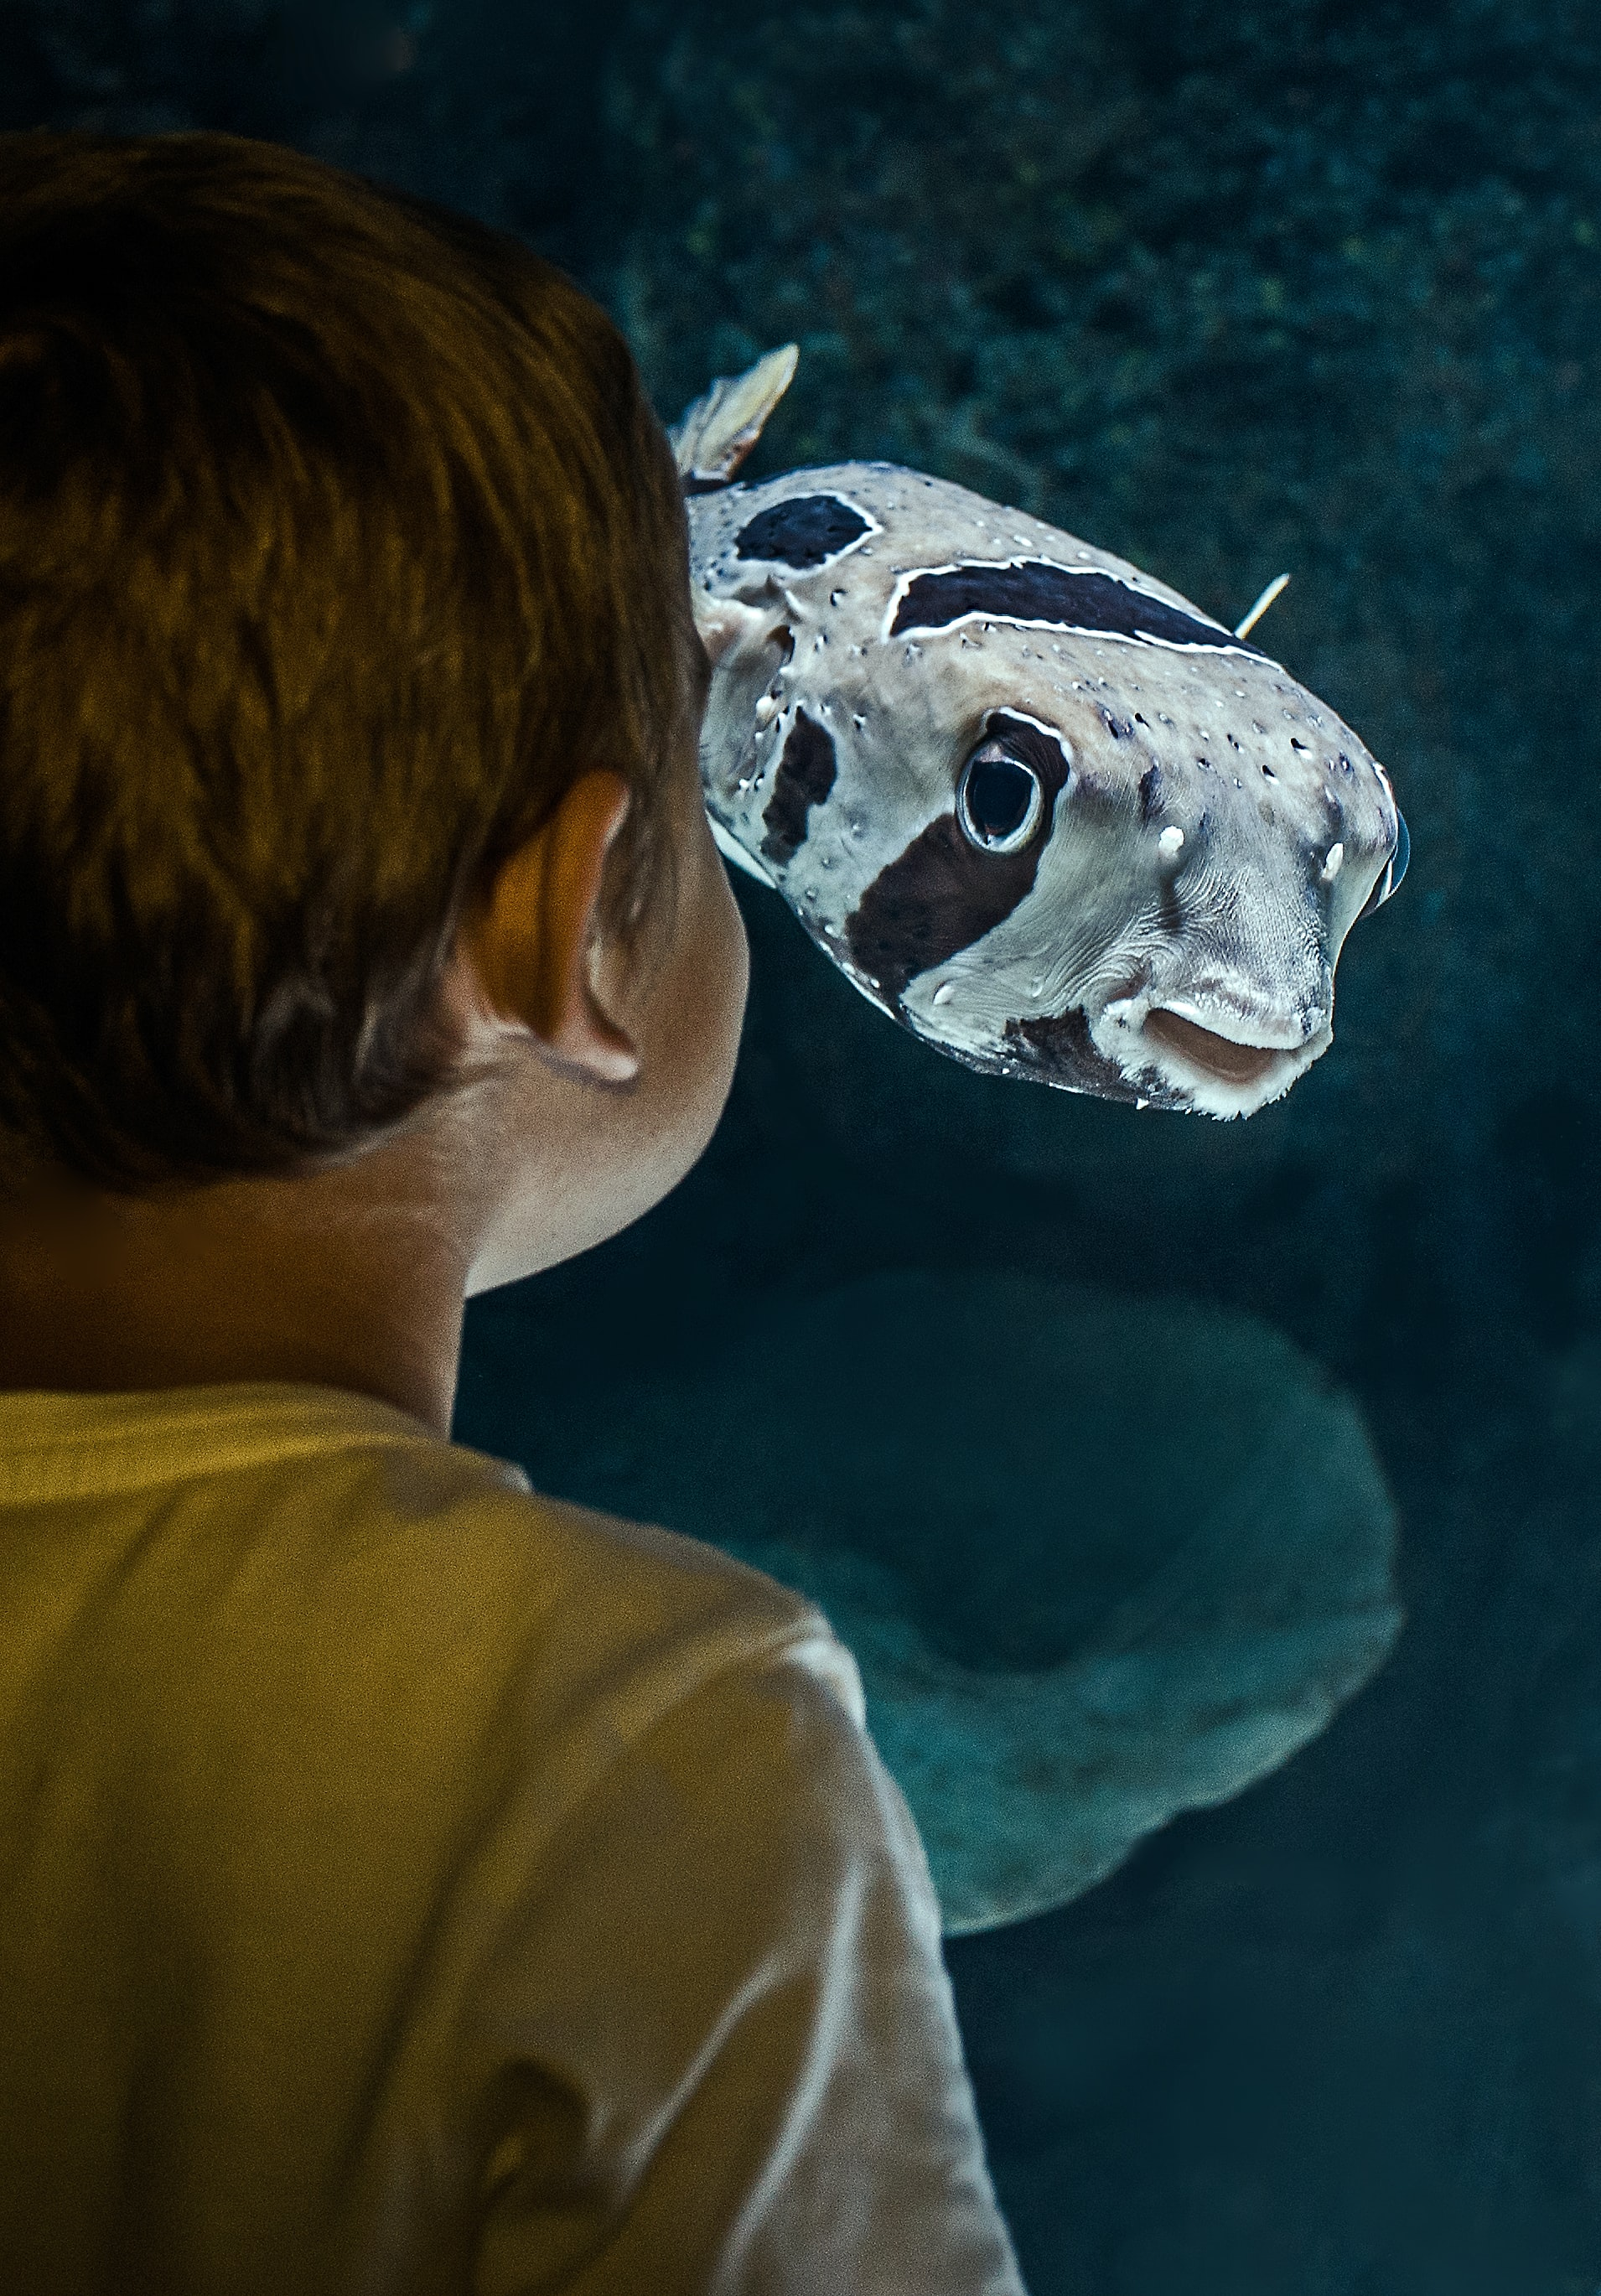 boy standing beside fish inside room